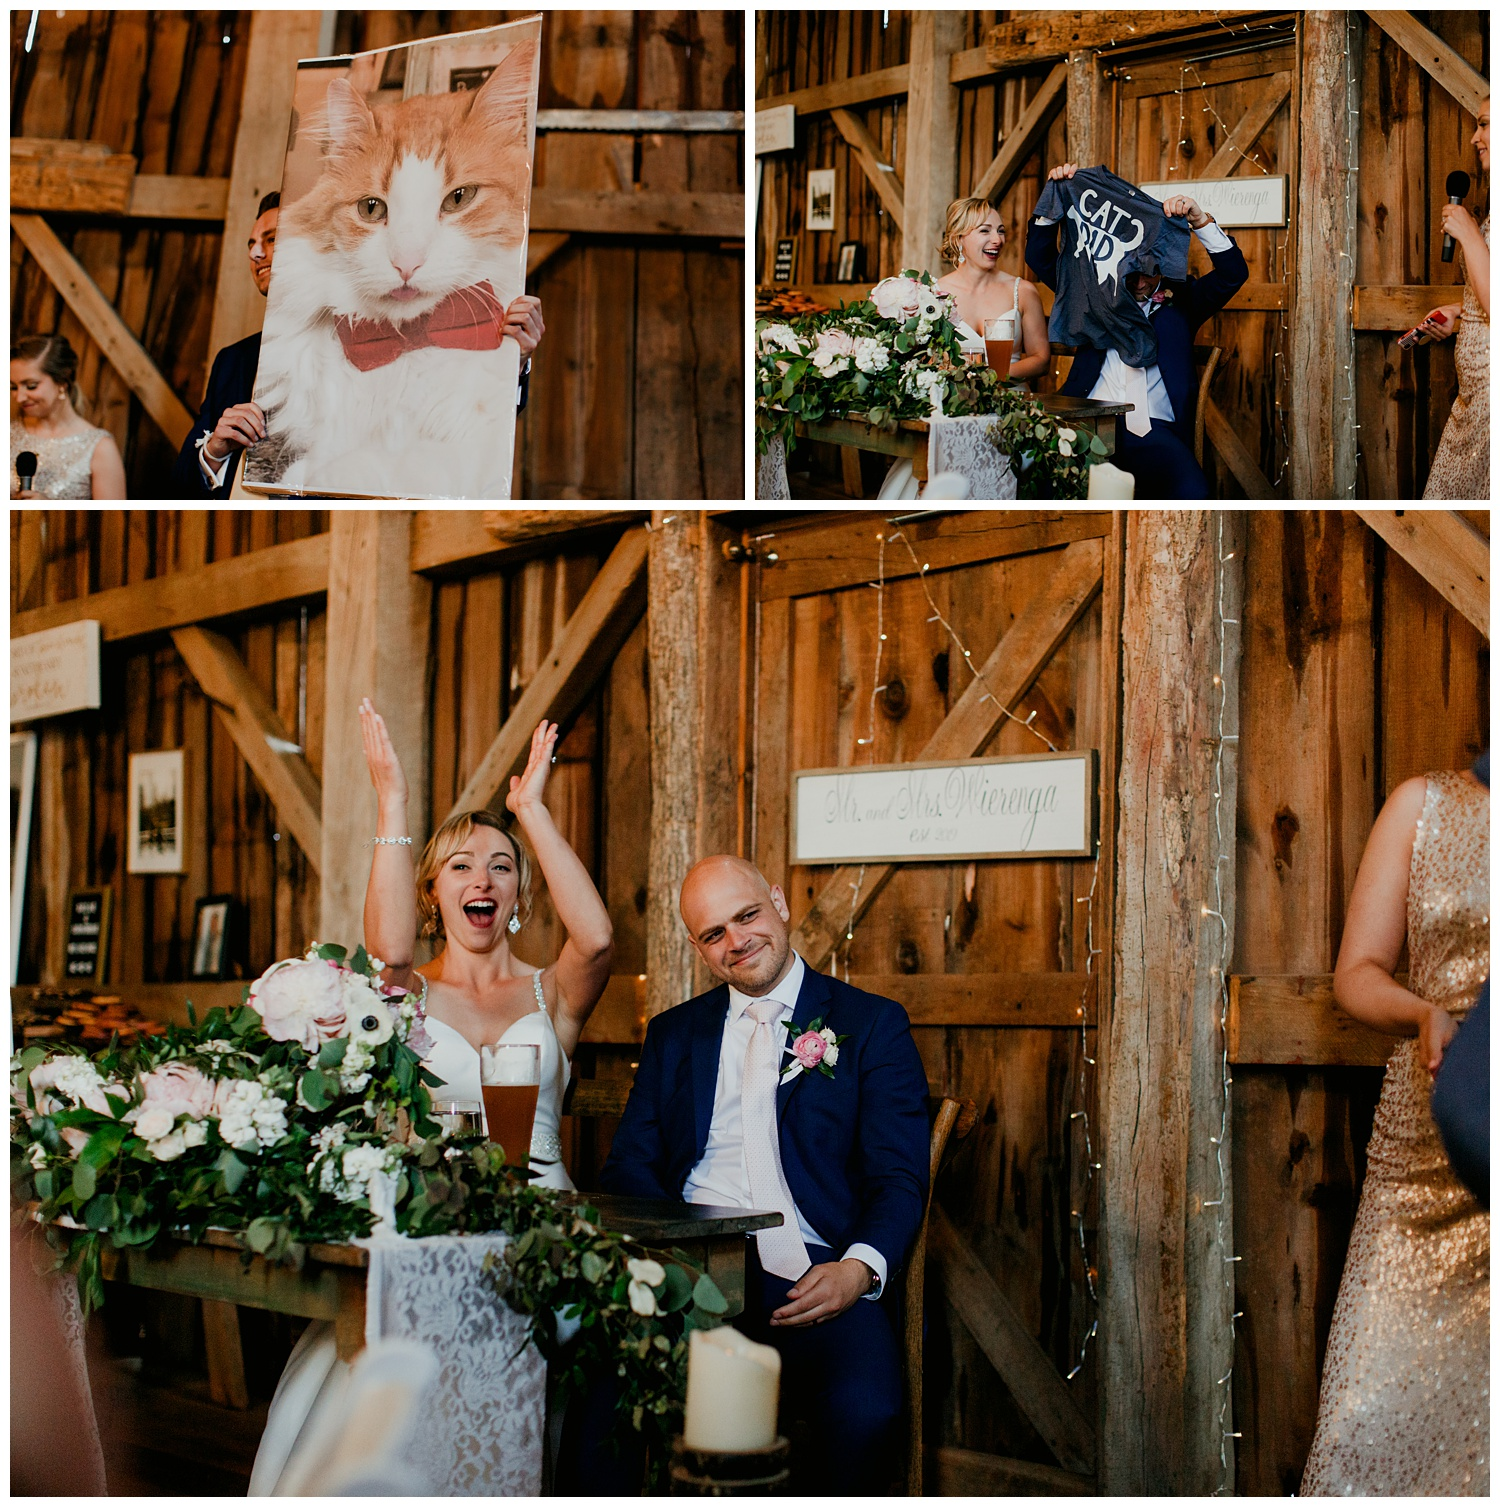 blissfulbarn threeoaks michigan wedding photography journeymandistillery116.jpg